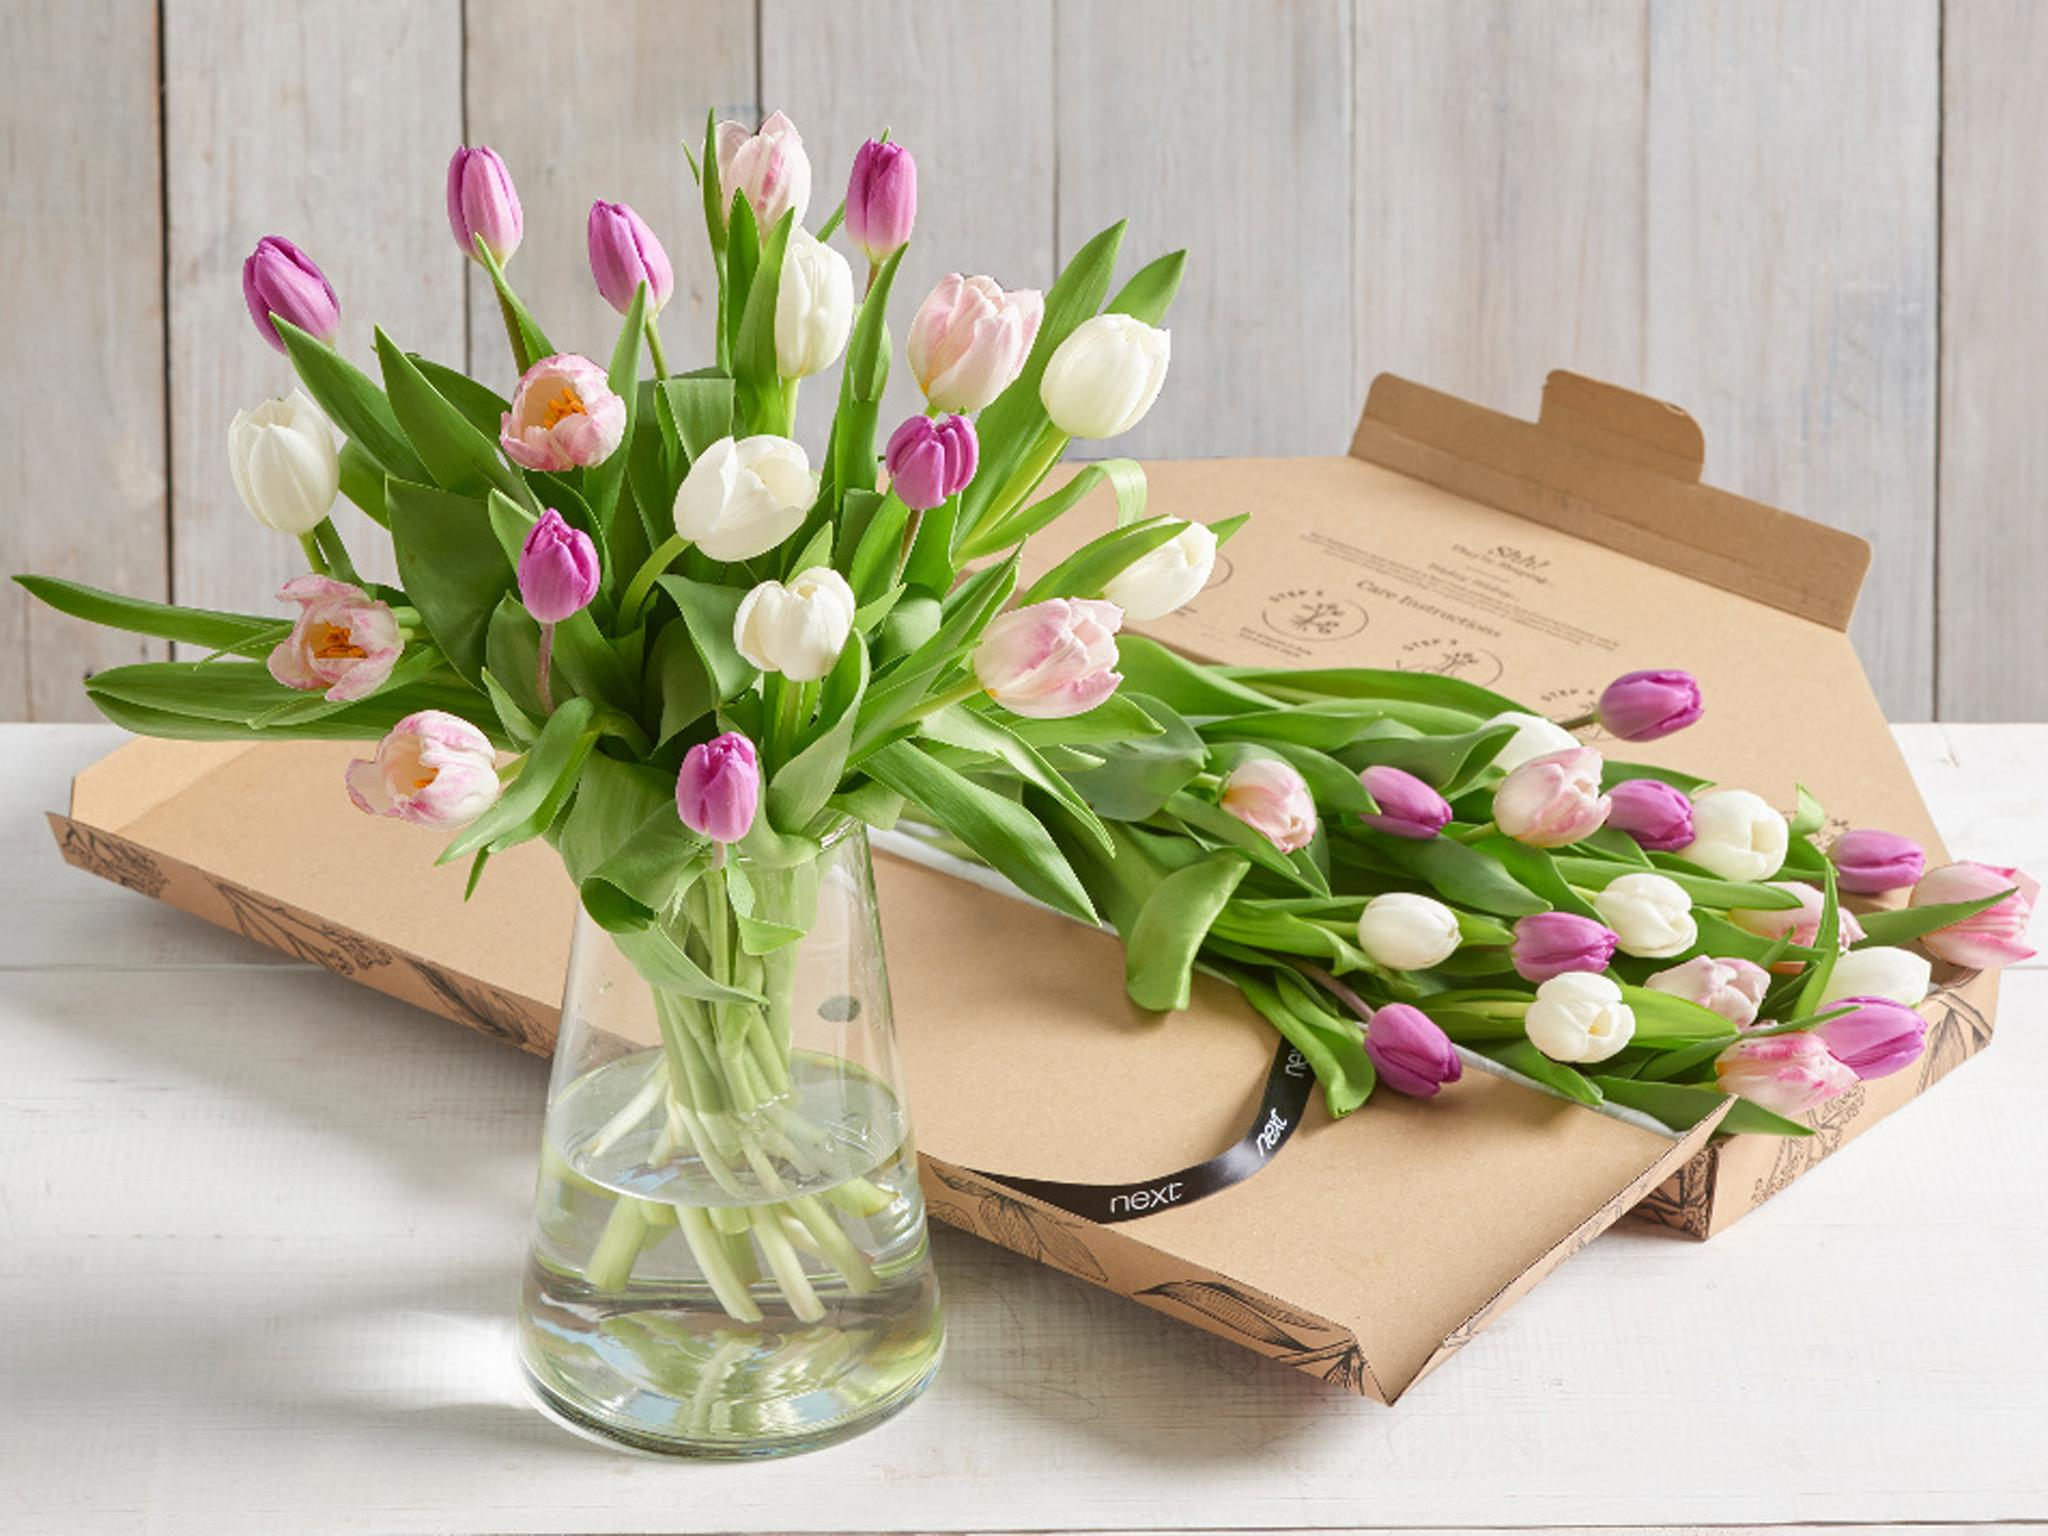 8 best letterbox flowers the independent this soft pretty bouquet from next flowers was the lowest in price we tested and at under 20 it really is a bargain and a cheap and cheerful way to say izmirmasajfo